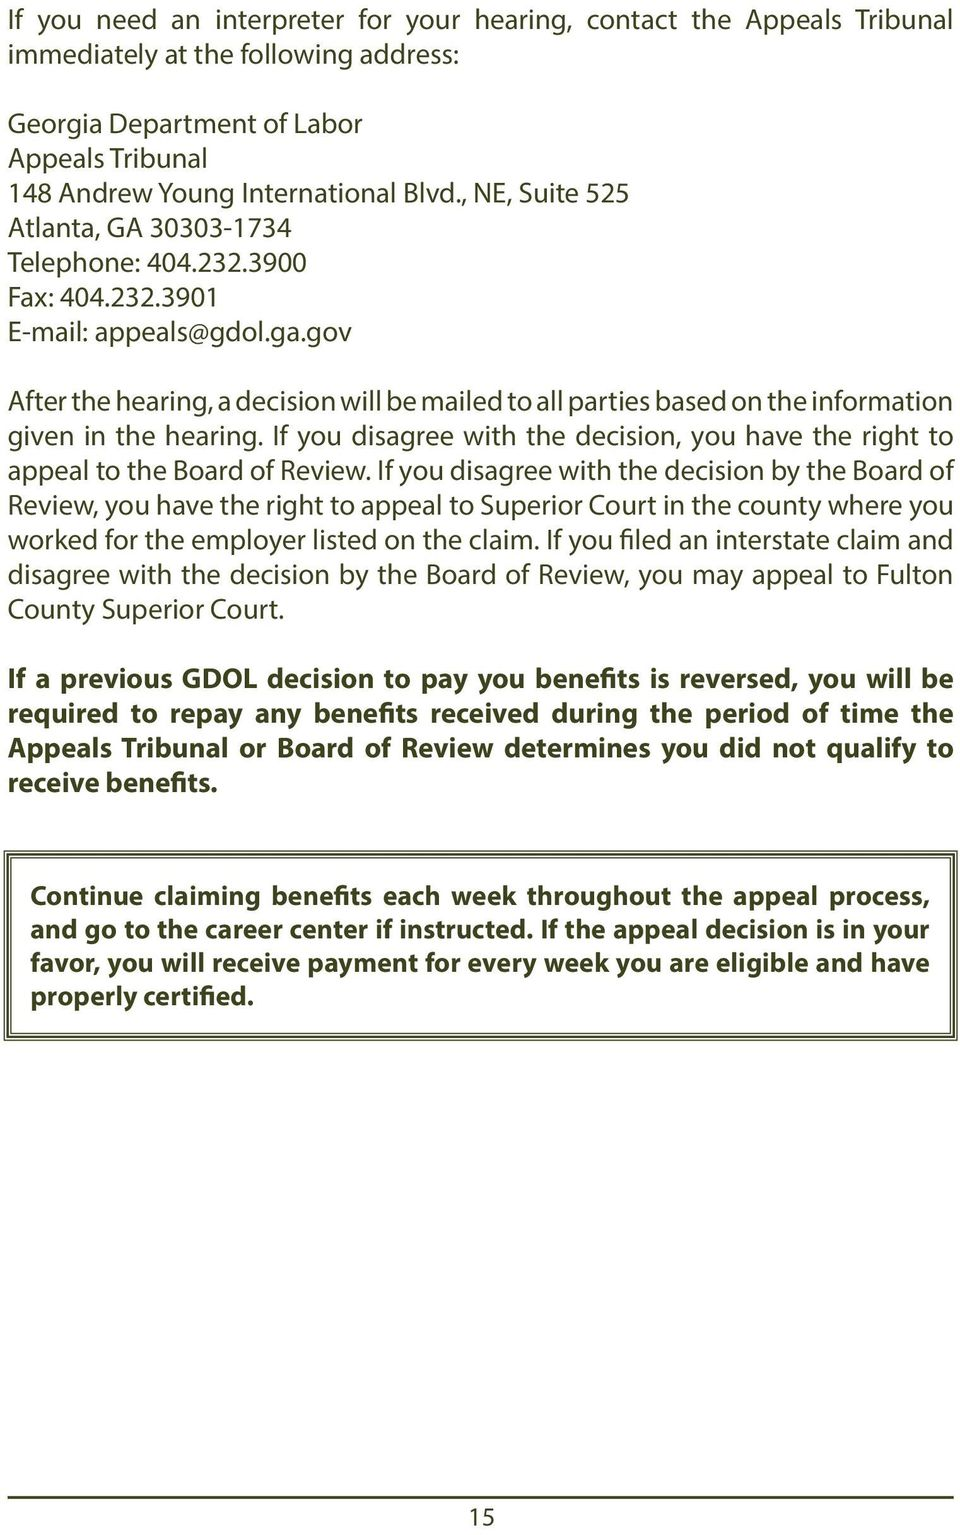 gov After the hearing, a decision will be mailed to all parties based on the information given in the hearing. If you disagree with the decision, you have the right to appeal to the Board of Review.